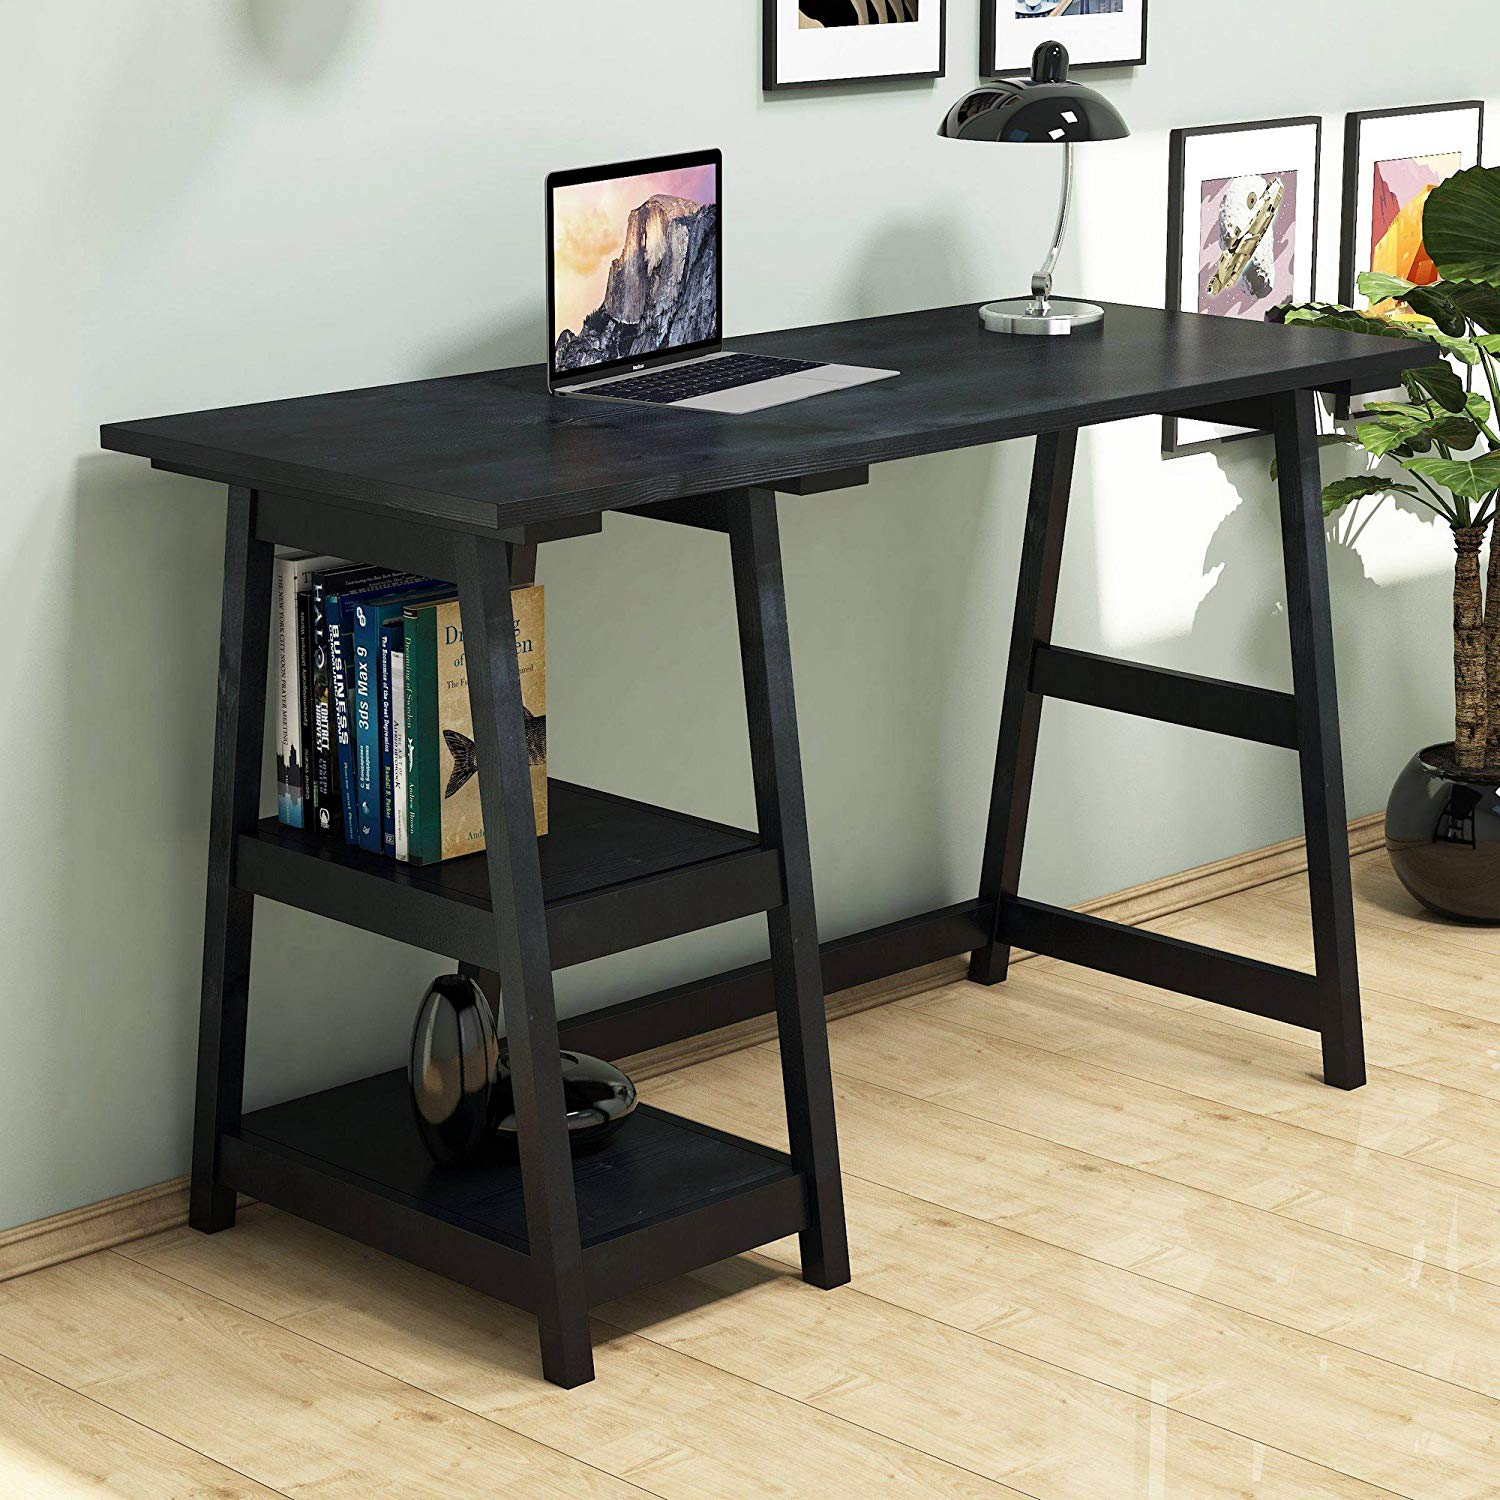 Black Wooden Study Desk, 100% Pine Wood - Functional Modern Computer Desk, Stable Stylish Decorative Accessory, Study & Laptop Table for Home, Office, Living Room, Study Room